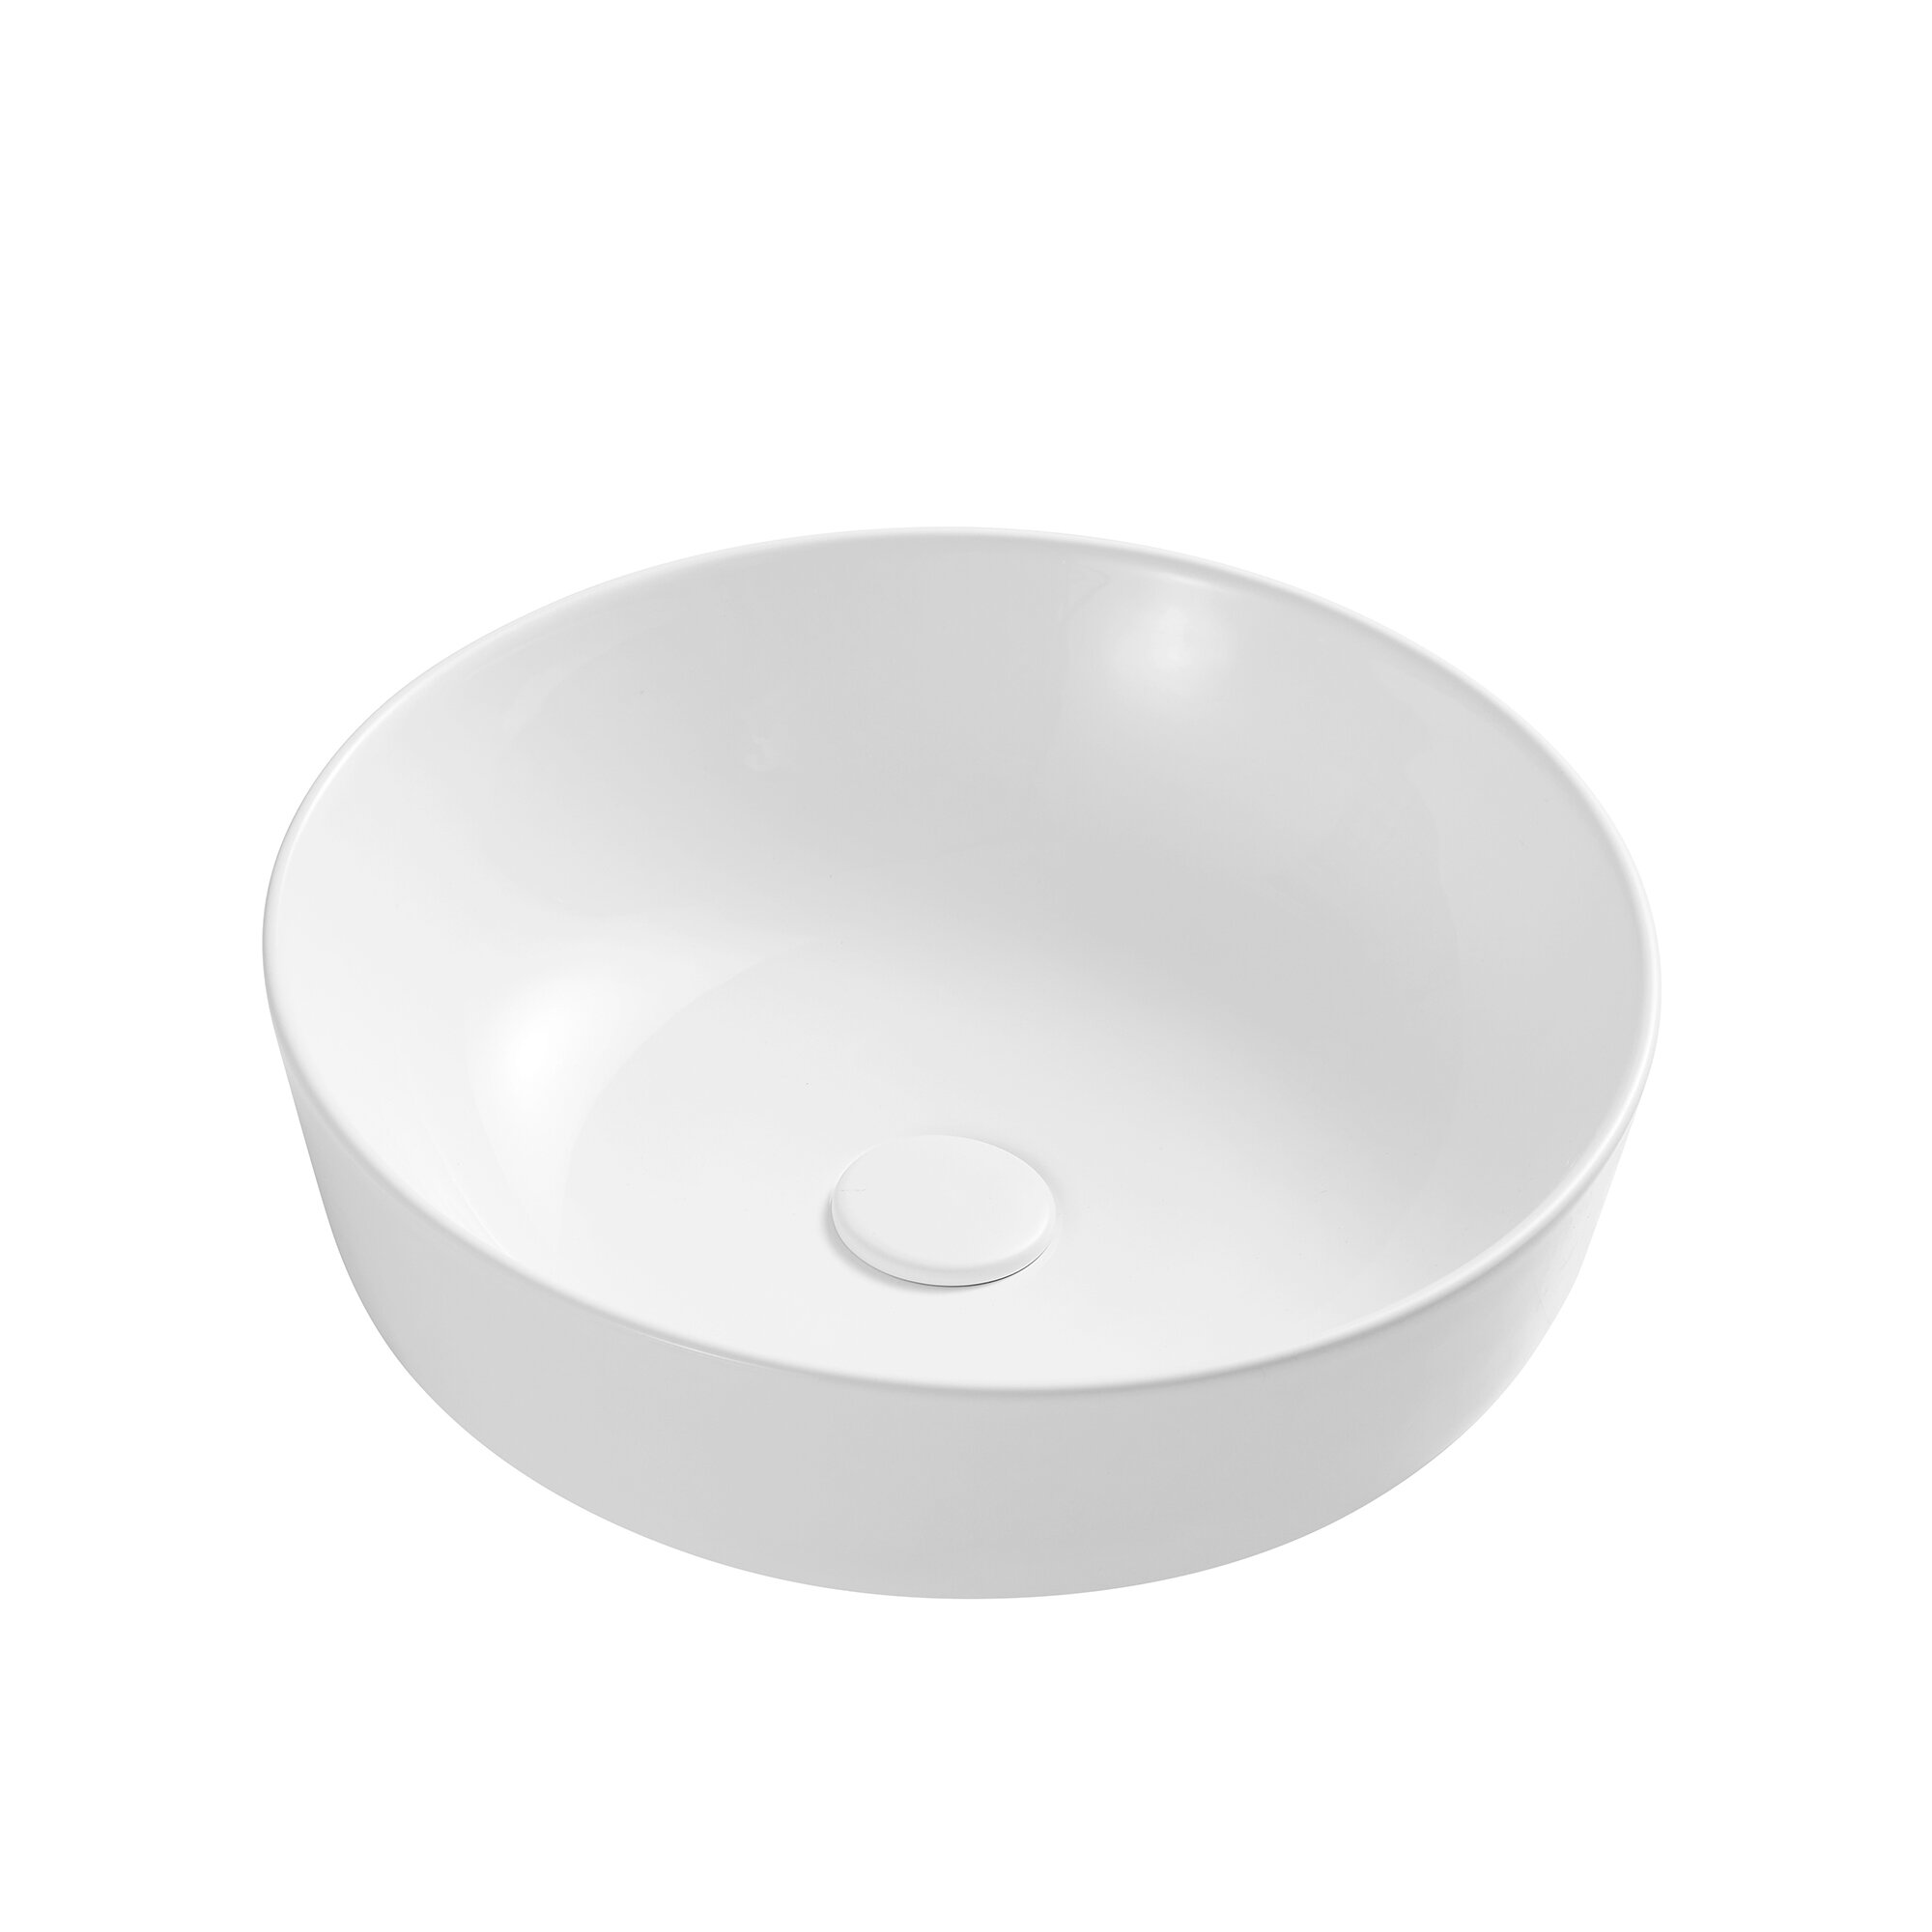 Yandood White Ceramic Circular Vessel Bathroom Sink Wayfair